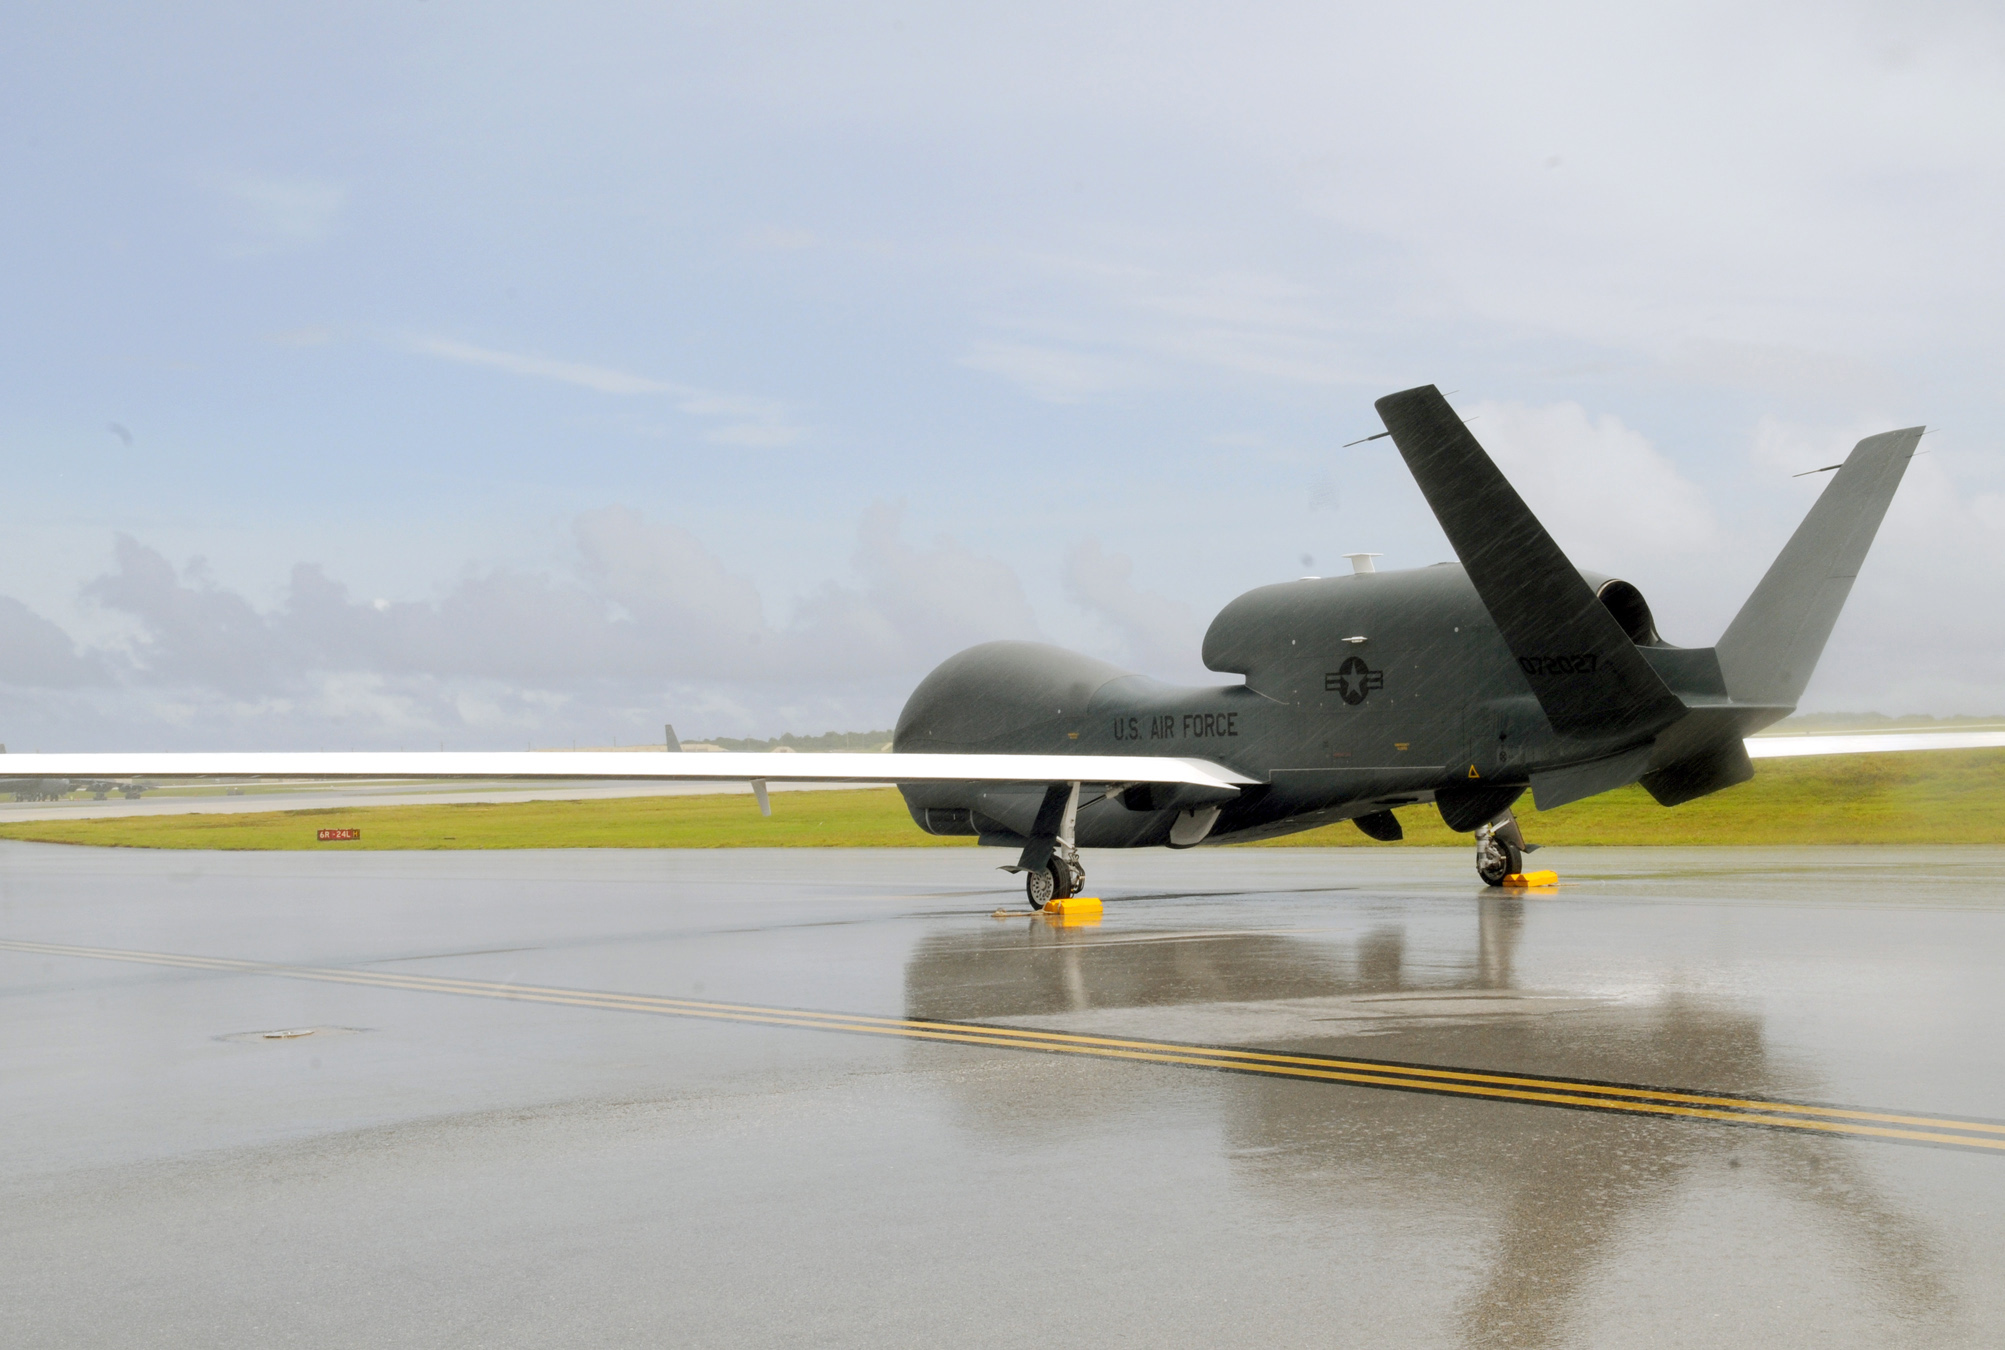 Enlisted drone pilots won't become warrant officers, but they may fly Reapers